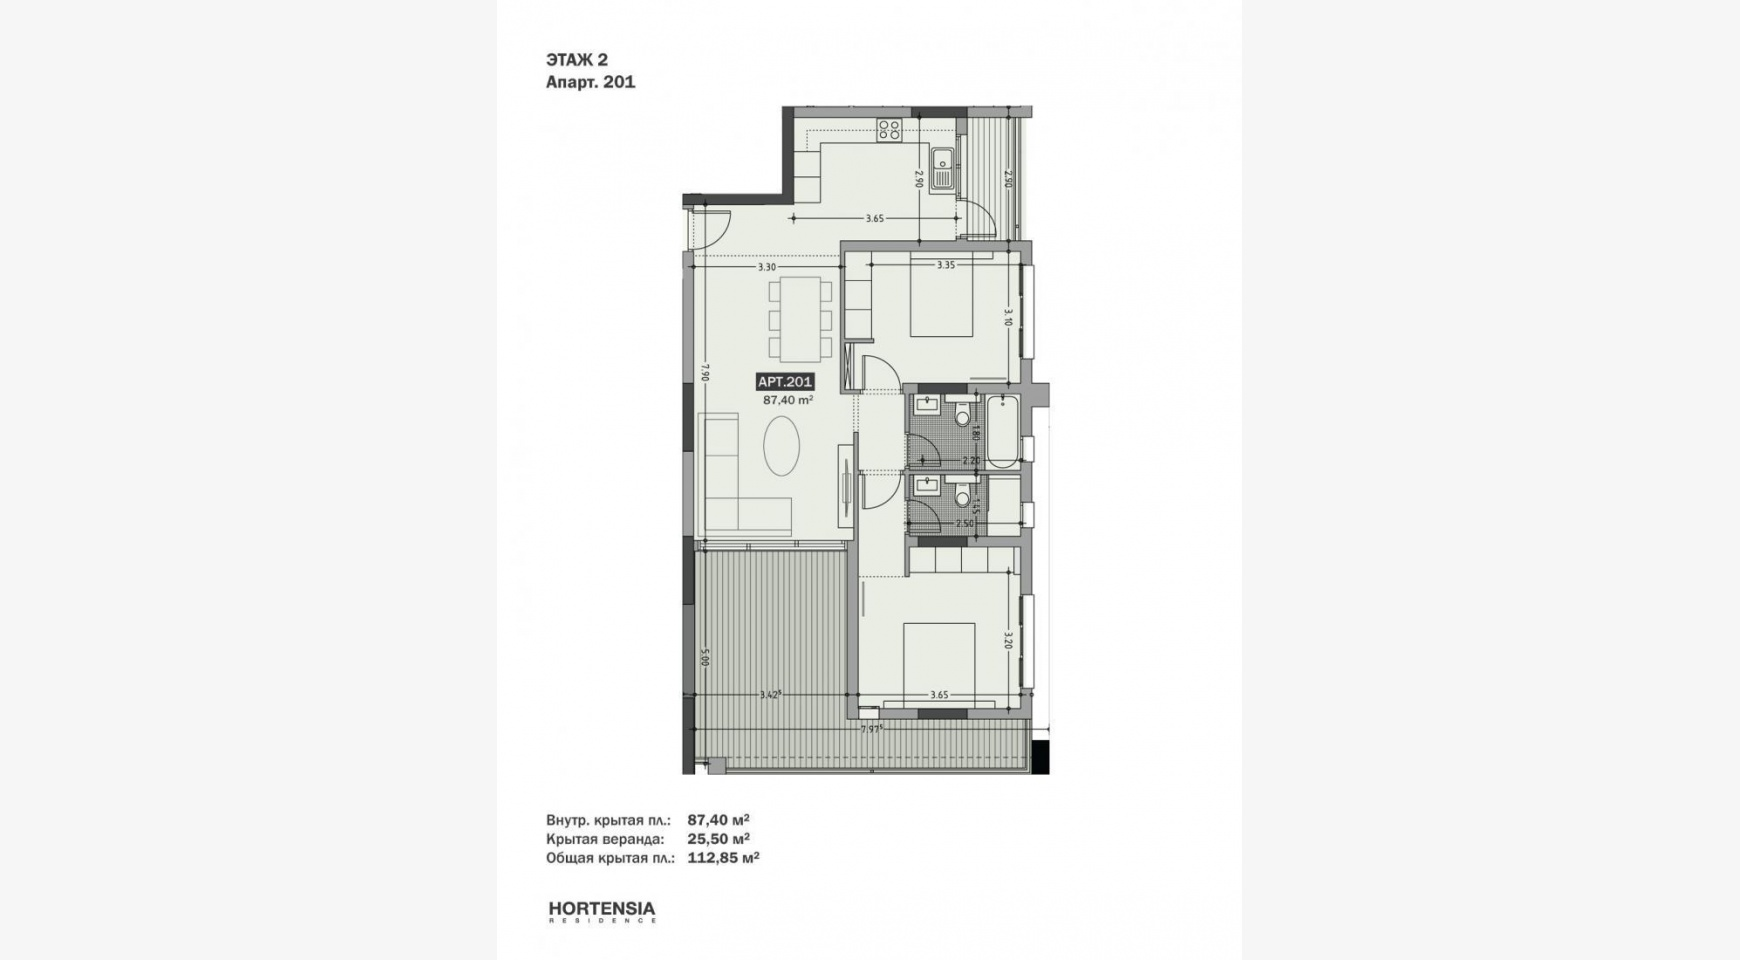 Hortensia Residence, Apt. 201. 2 Bedroom Apartment within a New Complex near the Sea  - 64